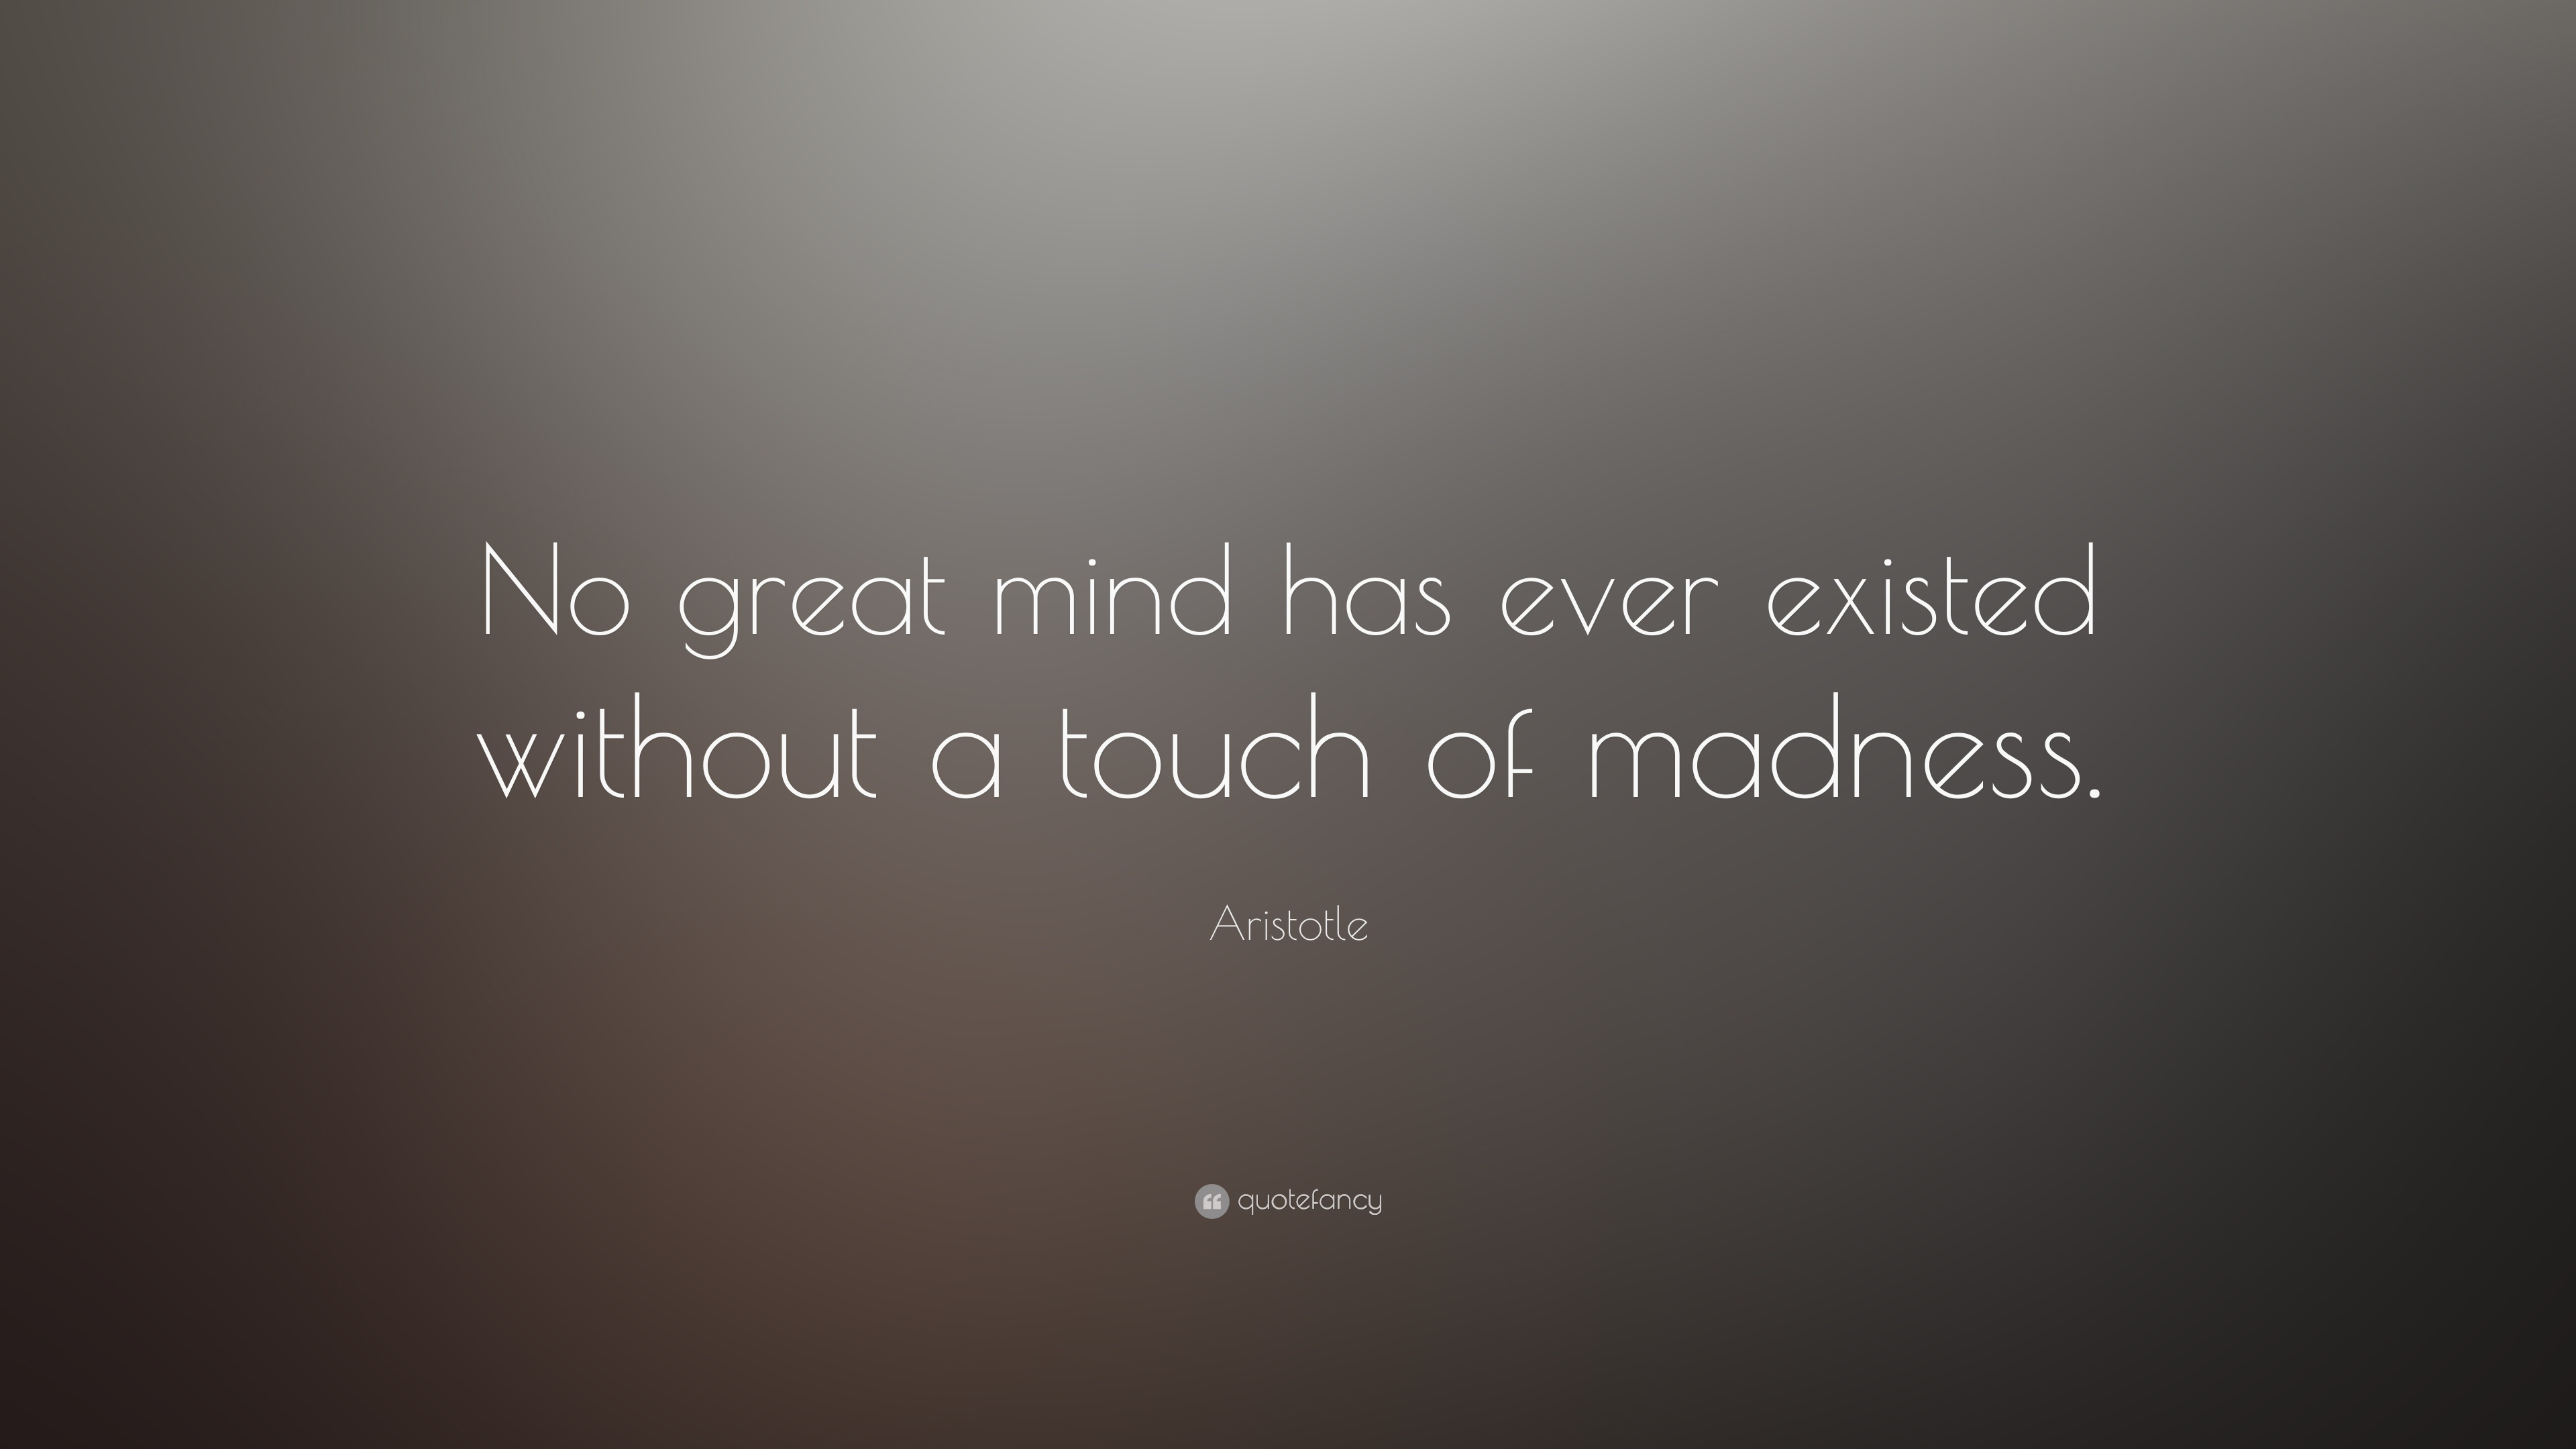 Motivational Wallpapers Without Quotes Aristotle Quote No Great Mind Has Ever Existed Without A